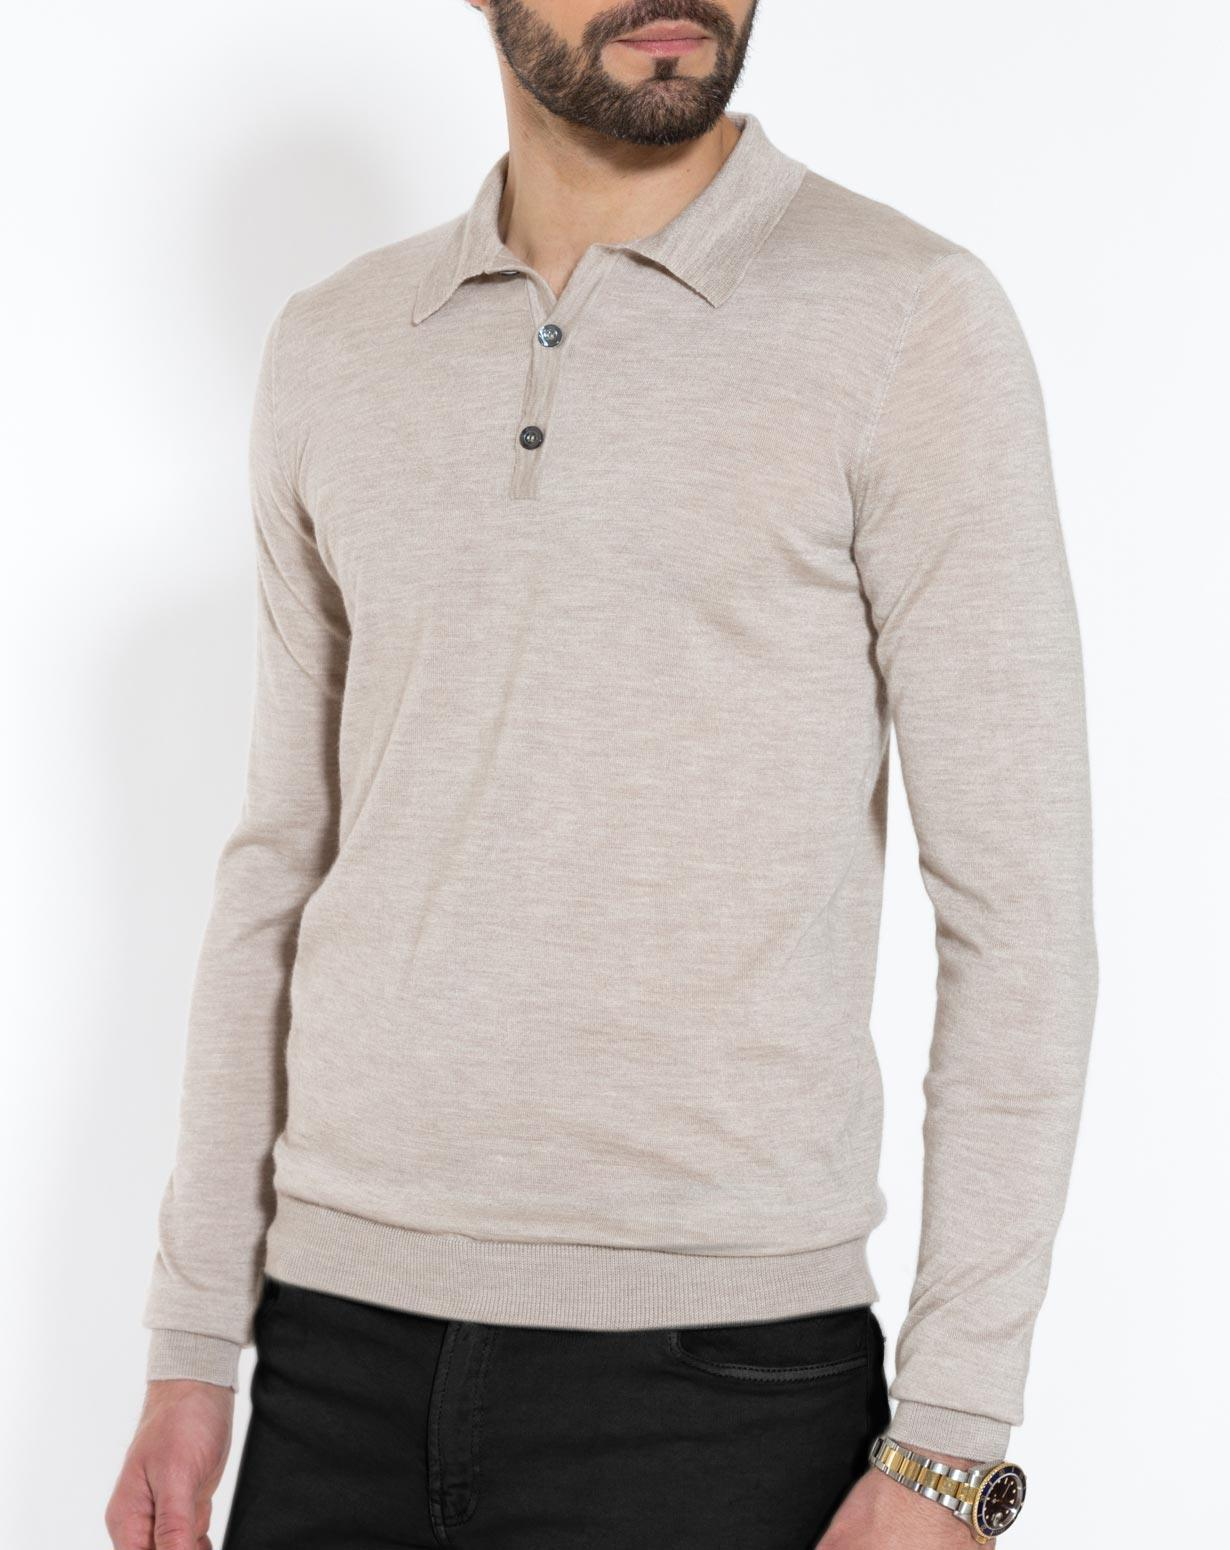 Men's Silk Cashmere Polo Shirt